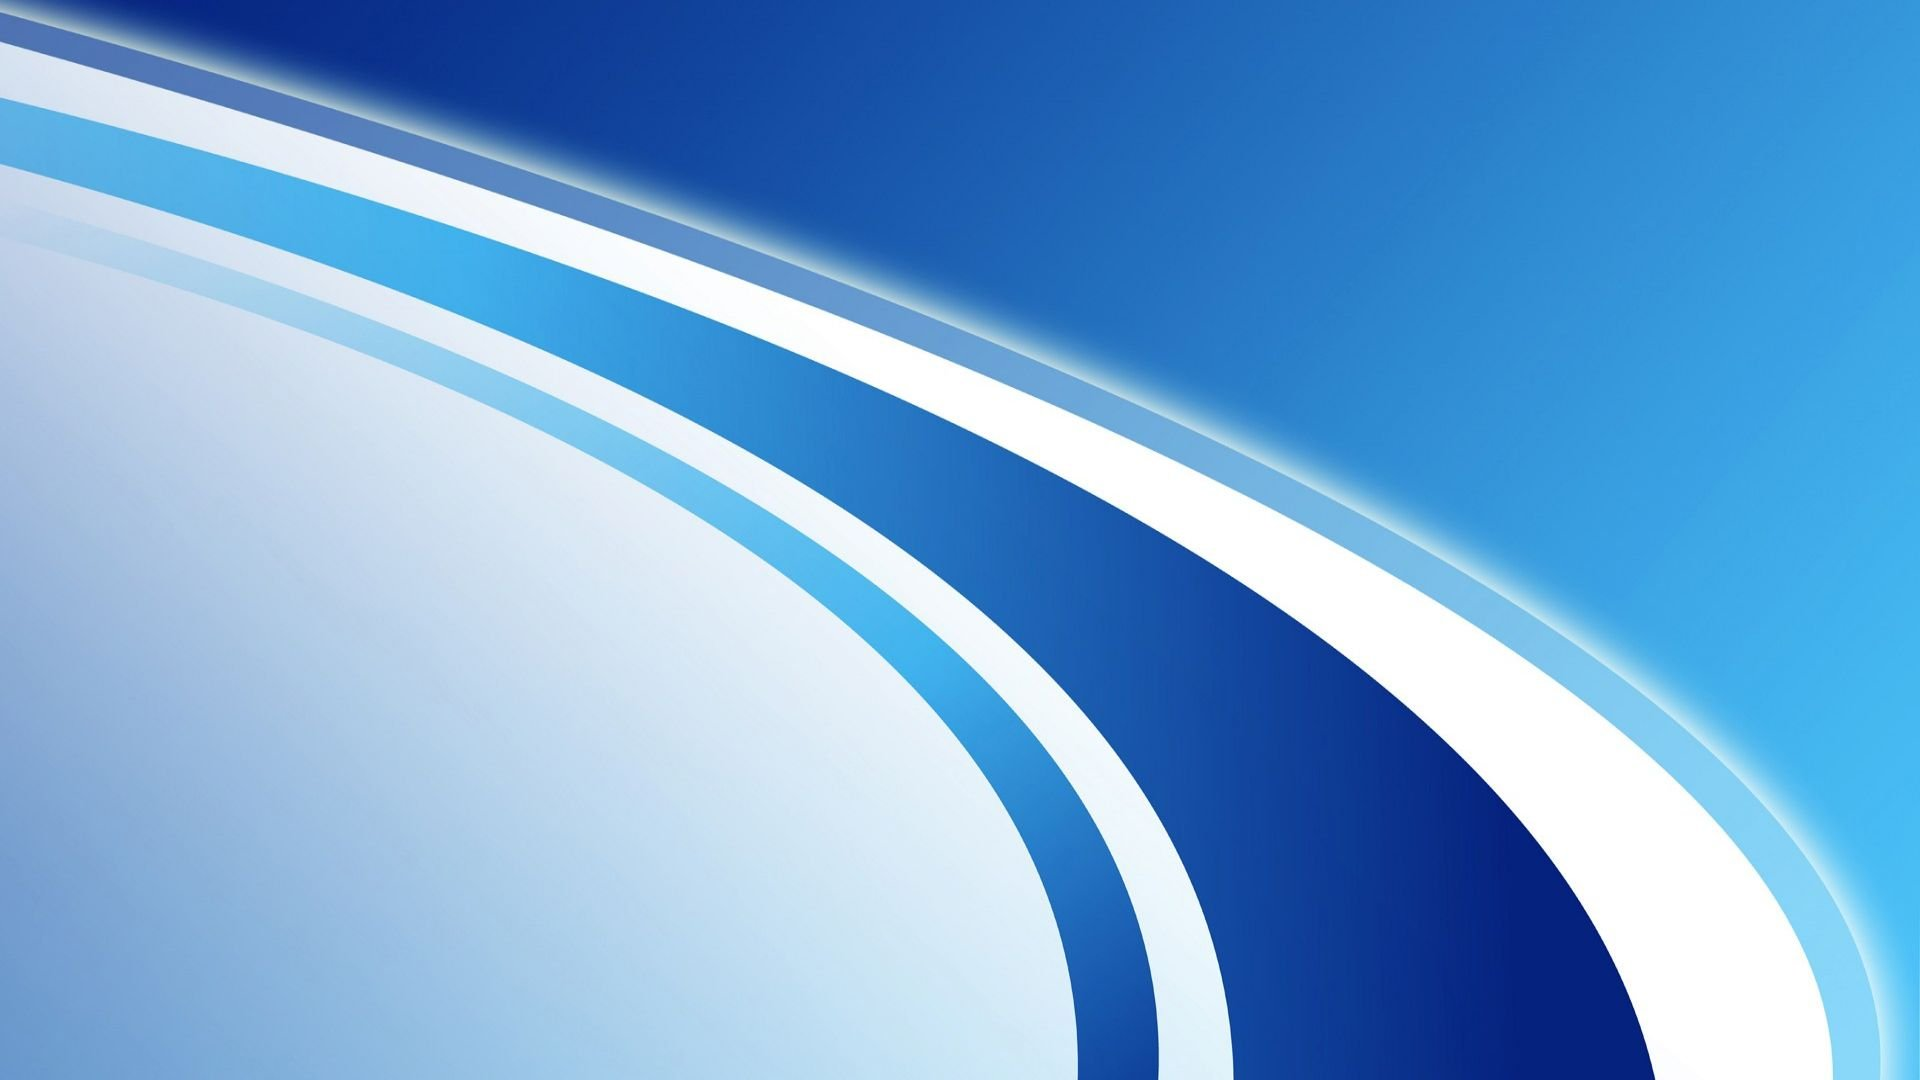 Abstract Backgrounds Blue 2328 Hd Wallpapers in Abstract   Imagesci 1920x1080